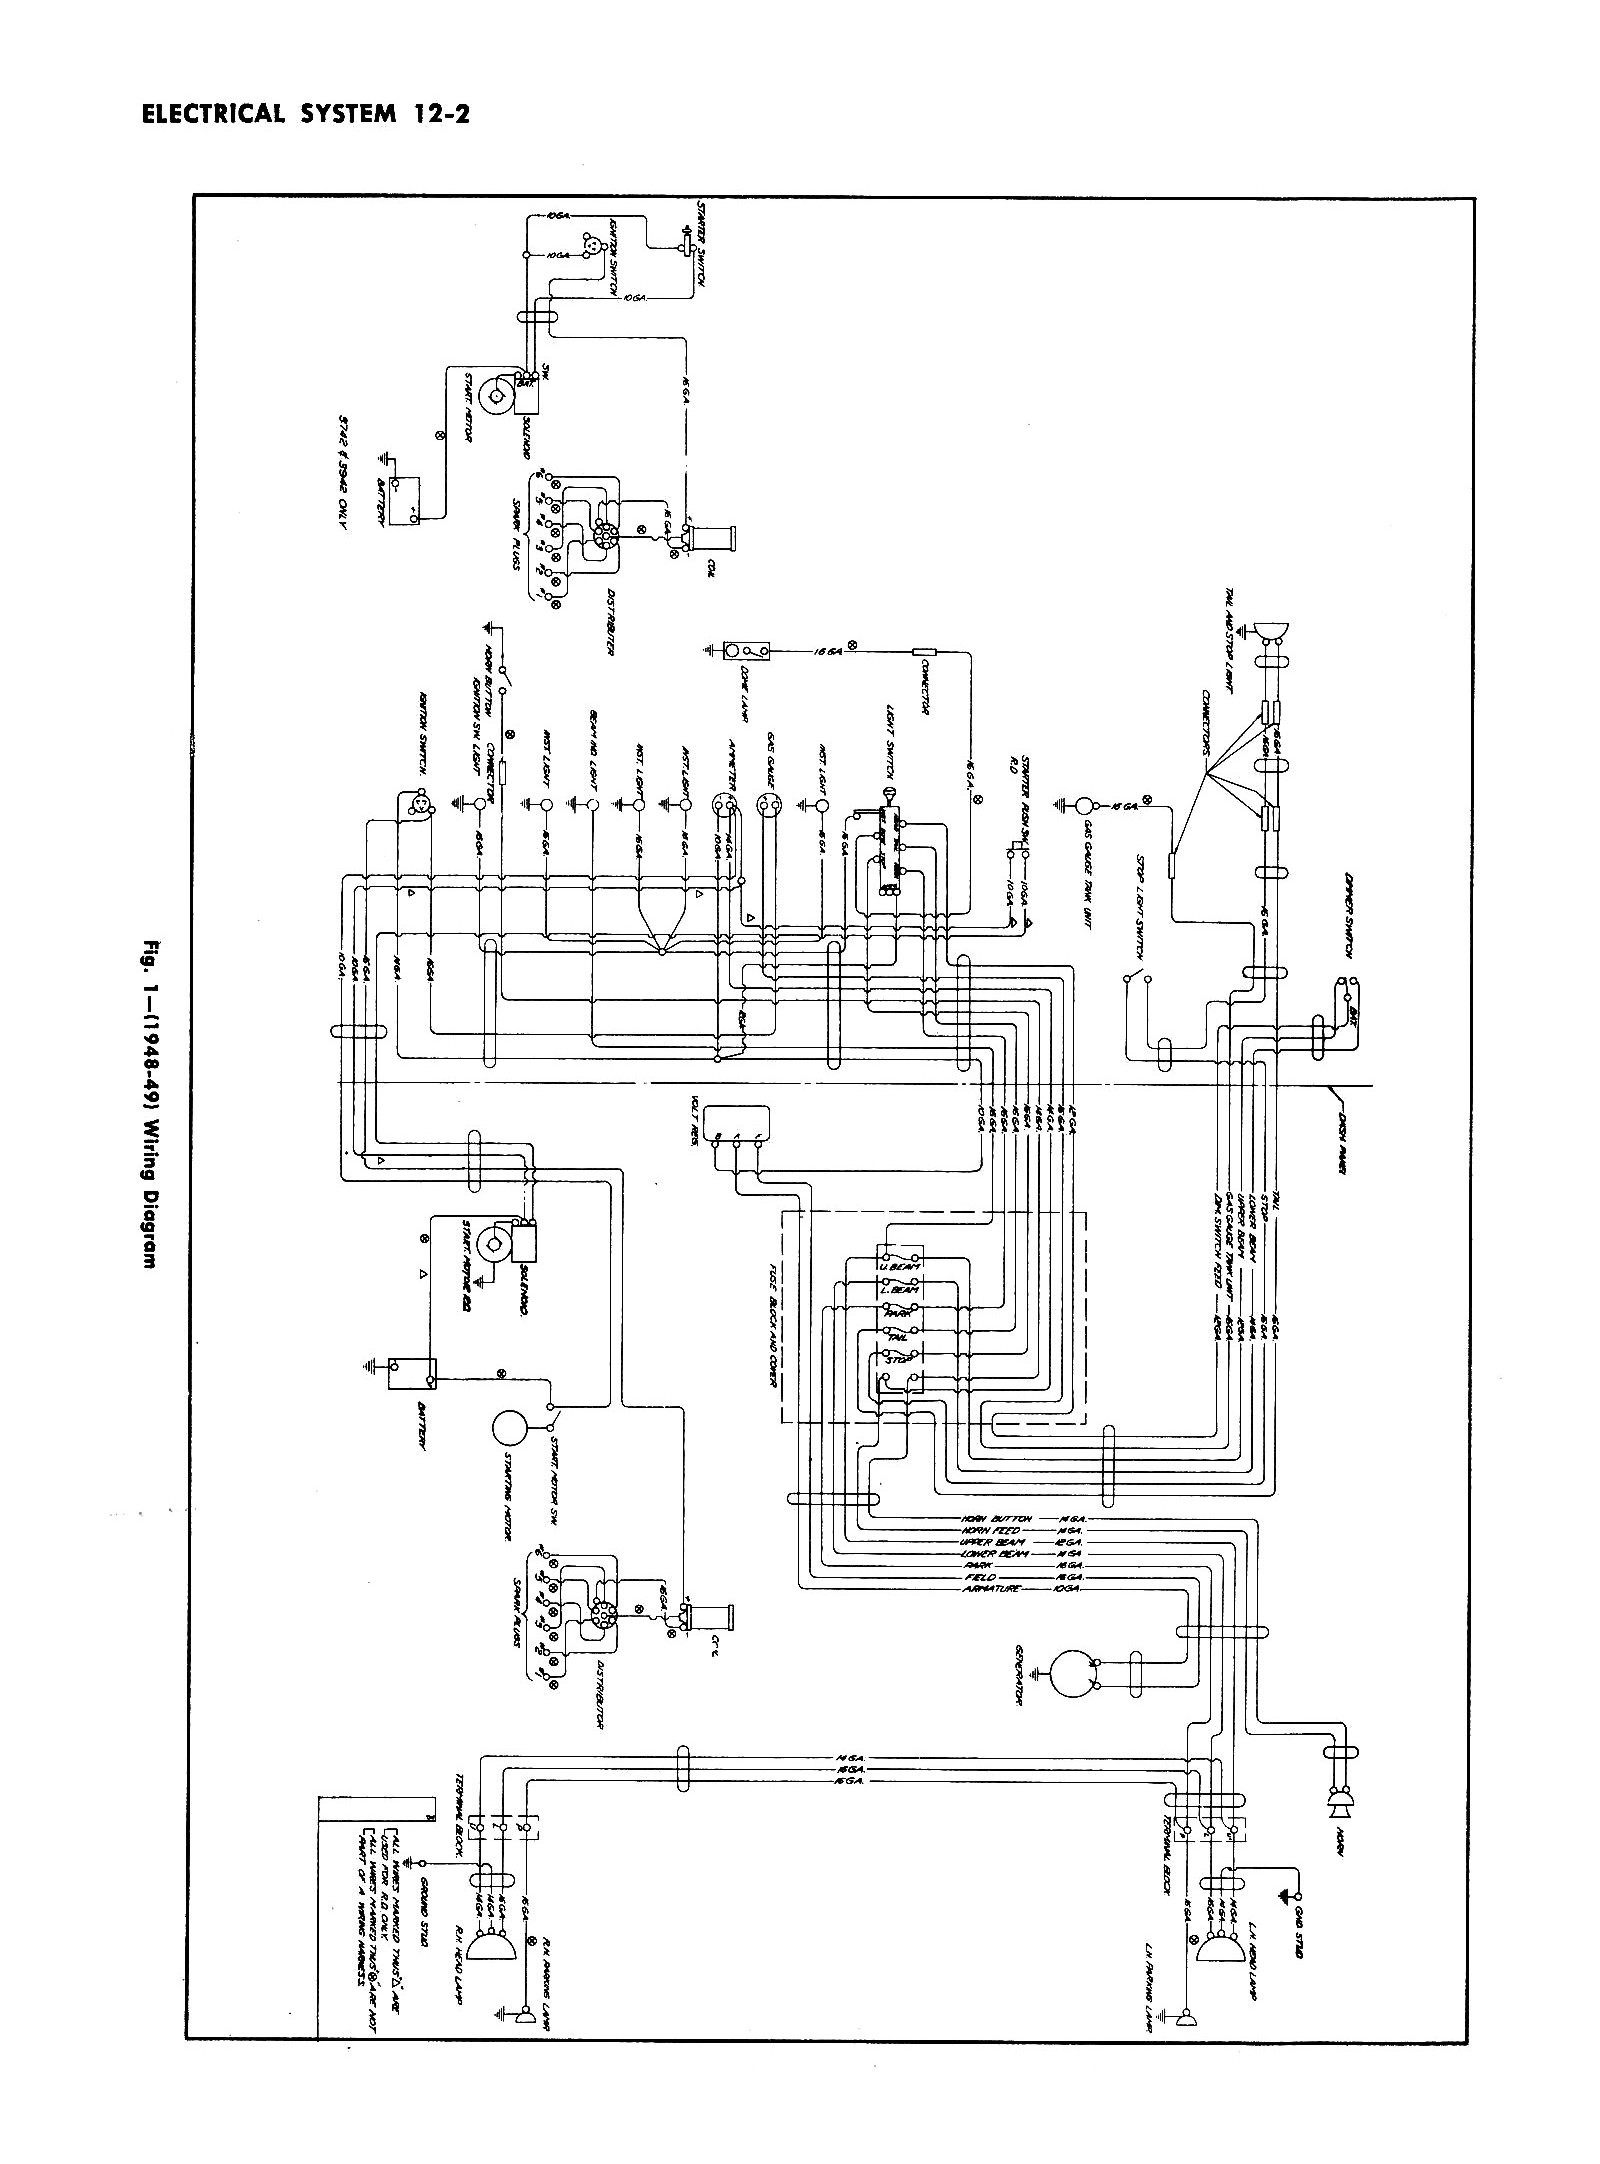 1951 Chevy Dash Wiring Diagram Data K5 Blazer Diagrams 51 Truck Harness Convertible